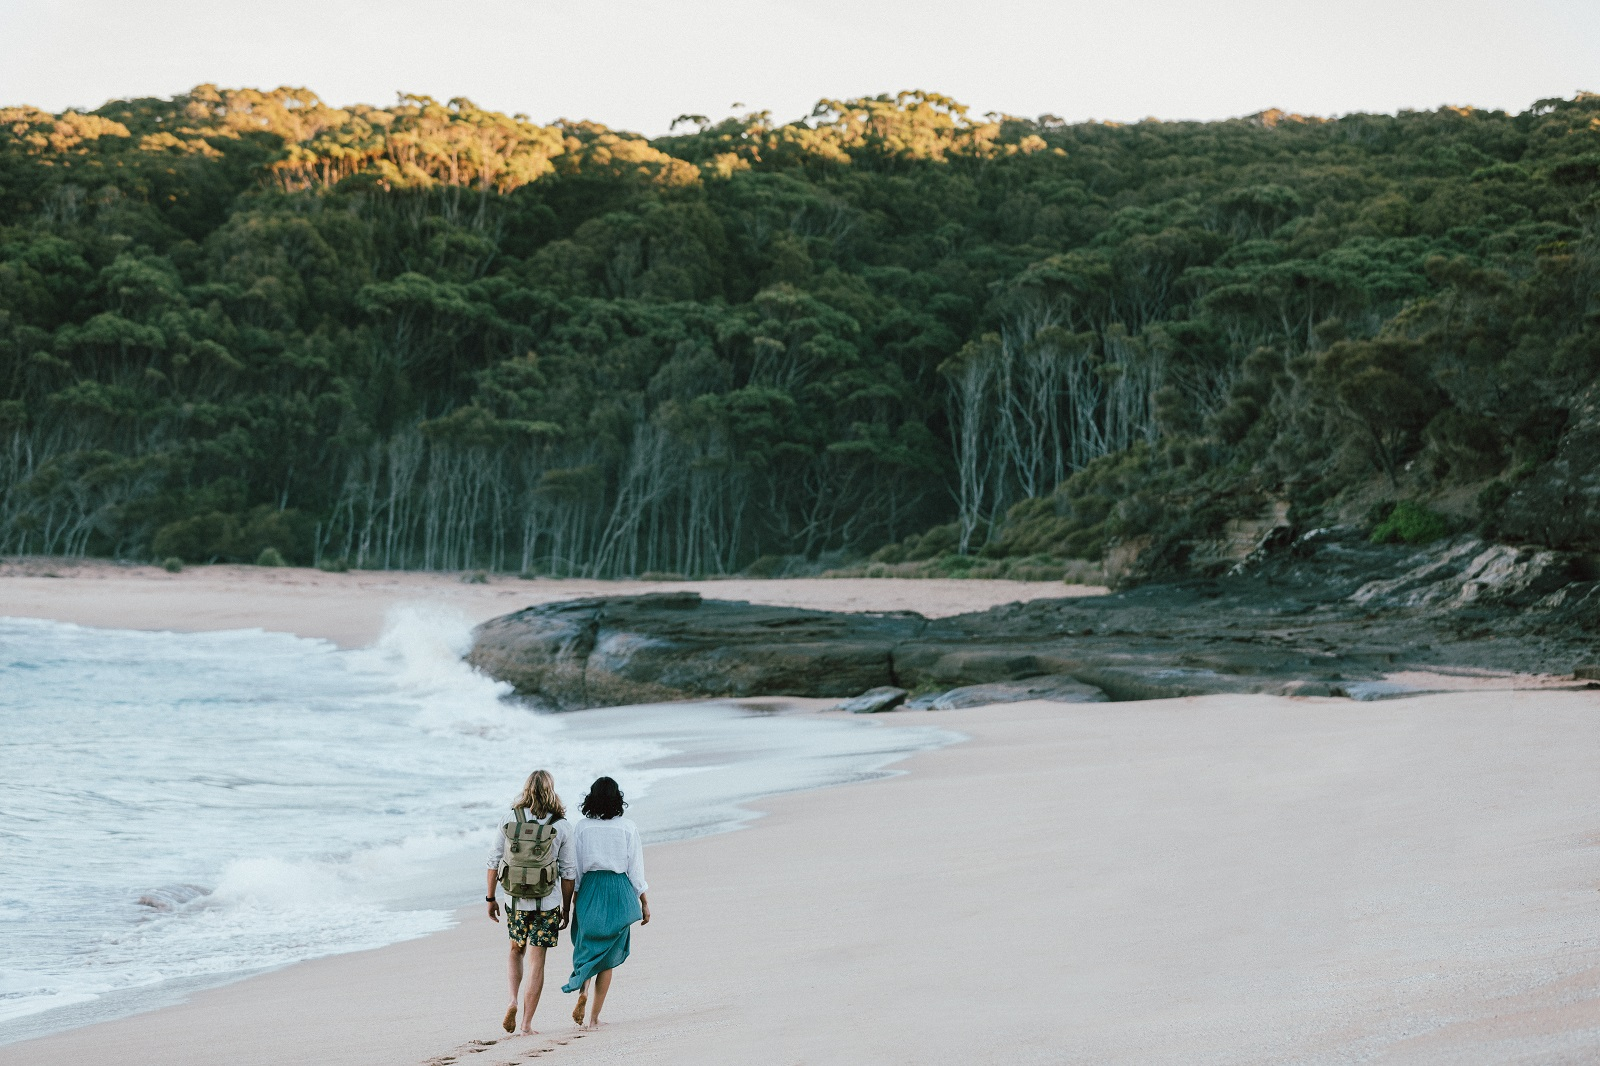 A man and woman walking along Emily Miller Beach in Murramarang National Park. Photo: Melissa Findley/OEH